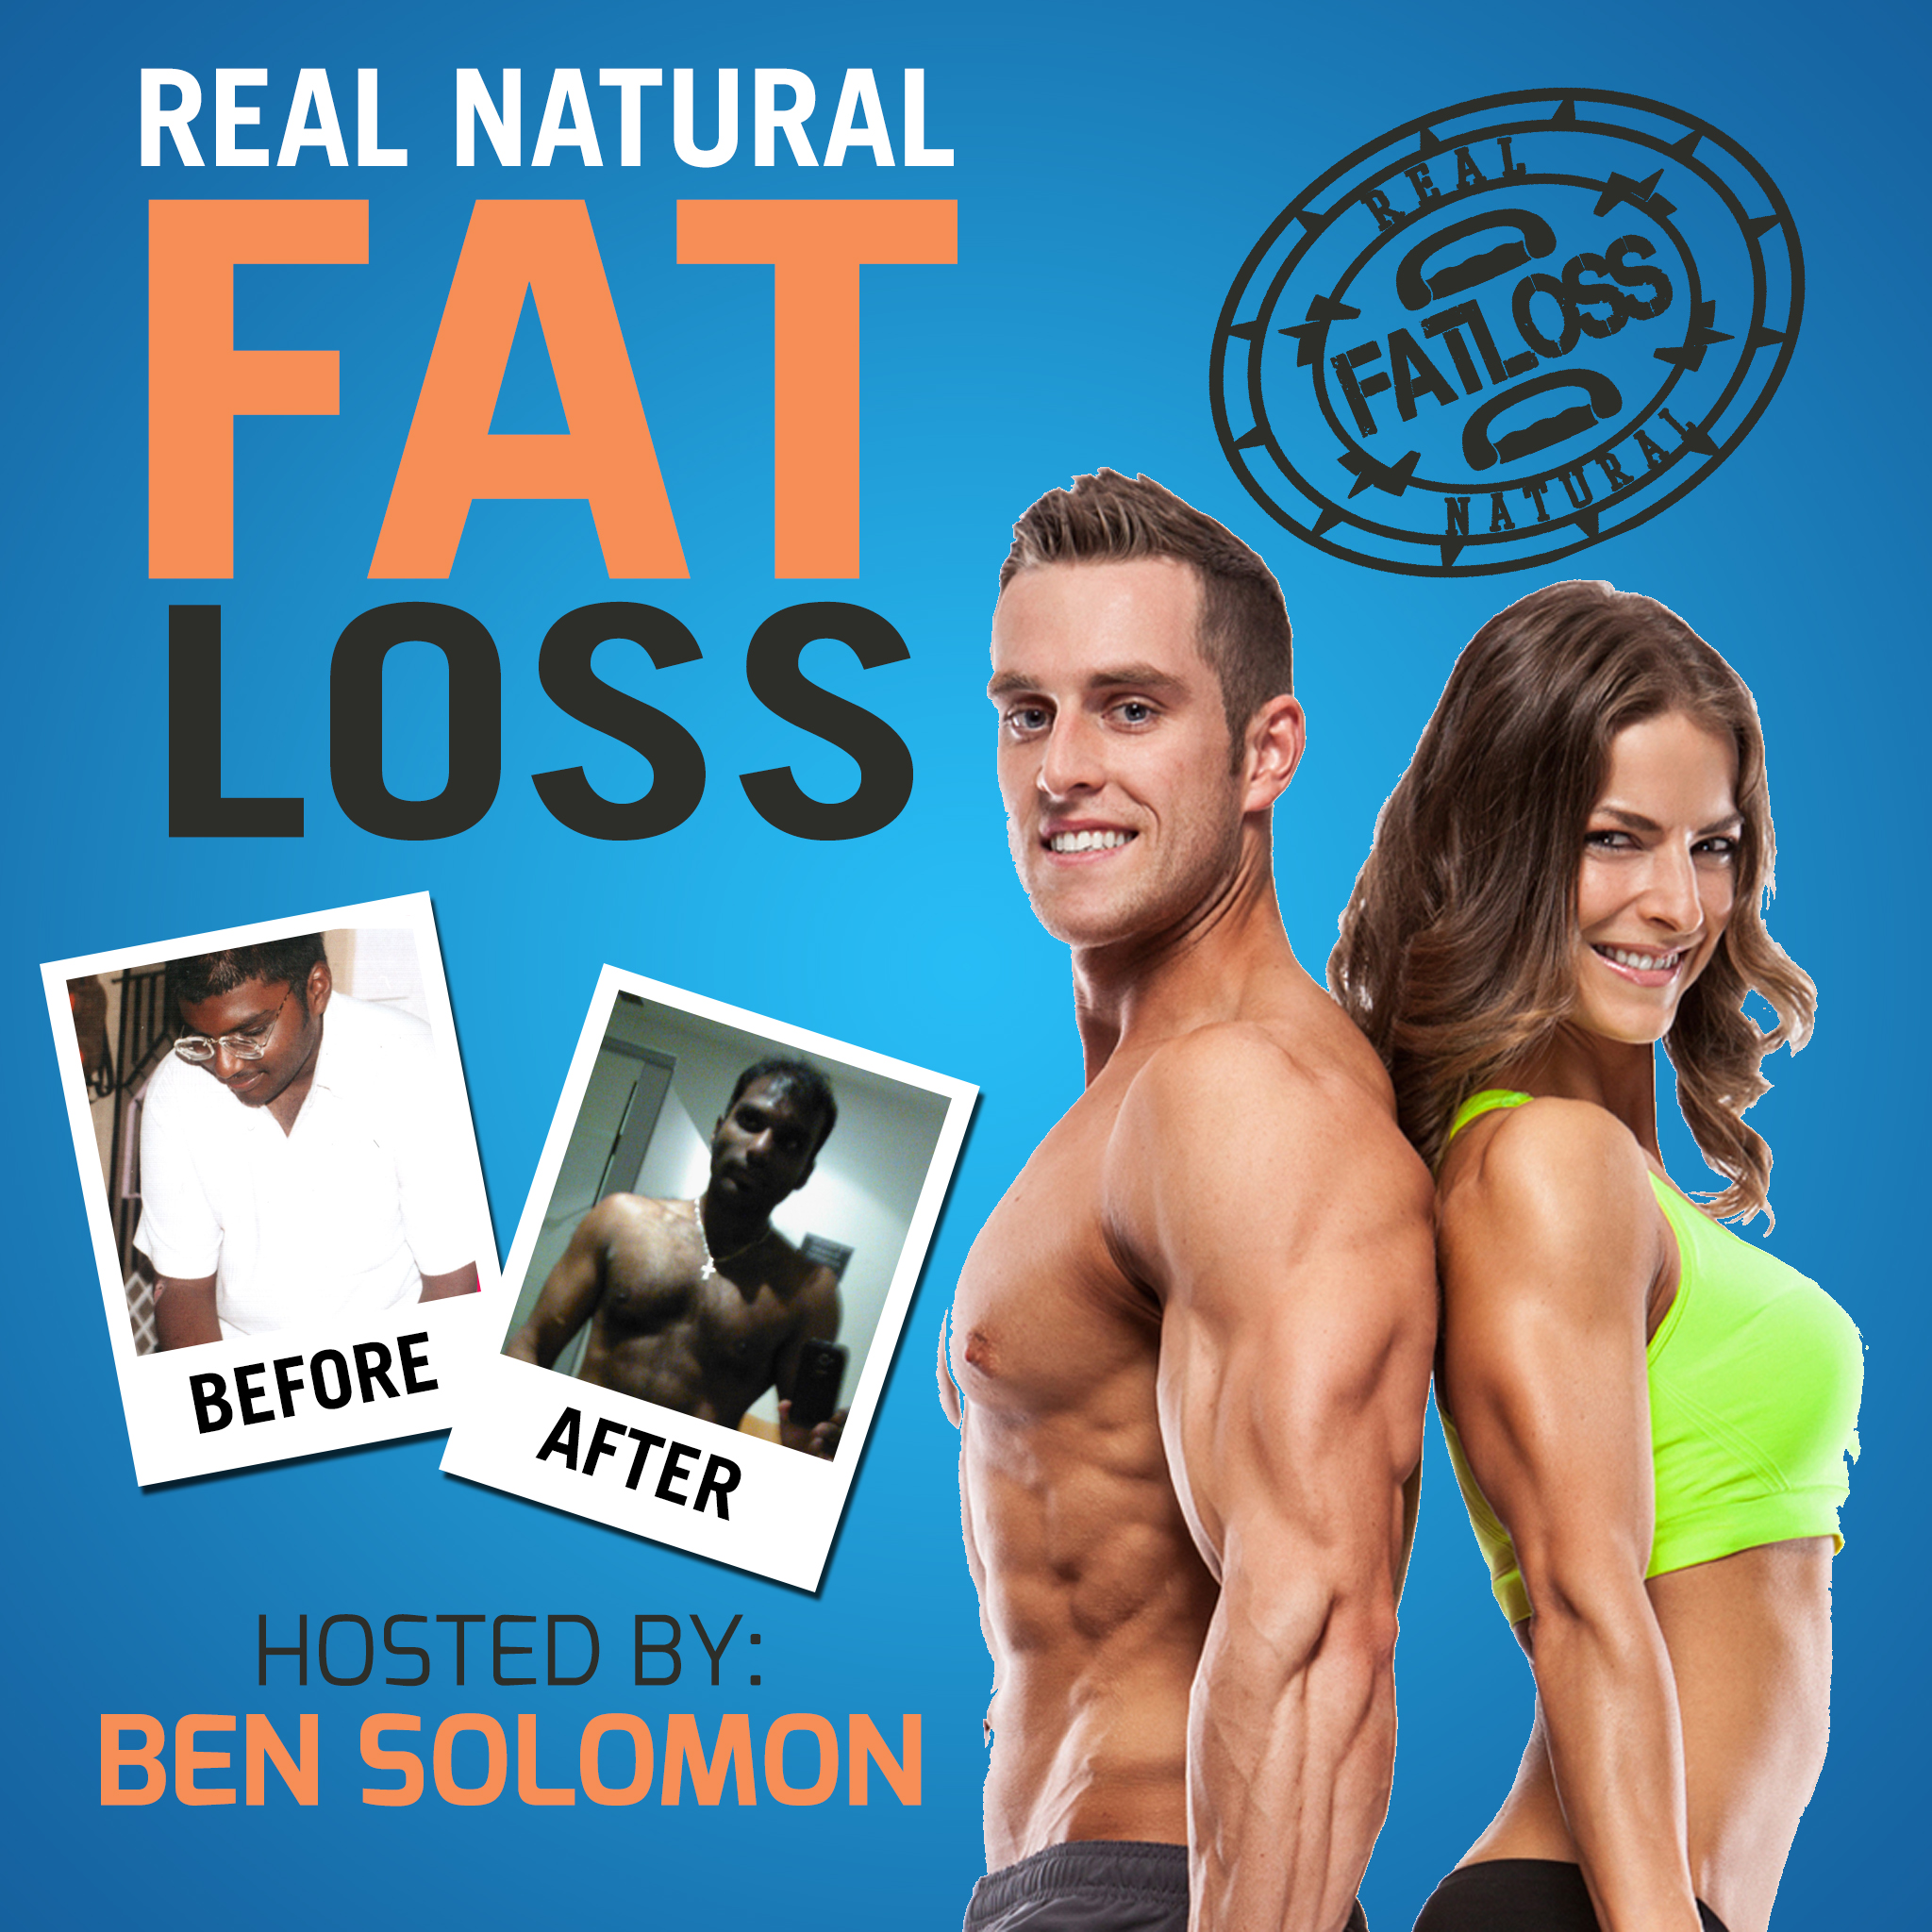 The Real Natural Fat Loss Show